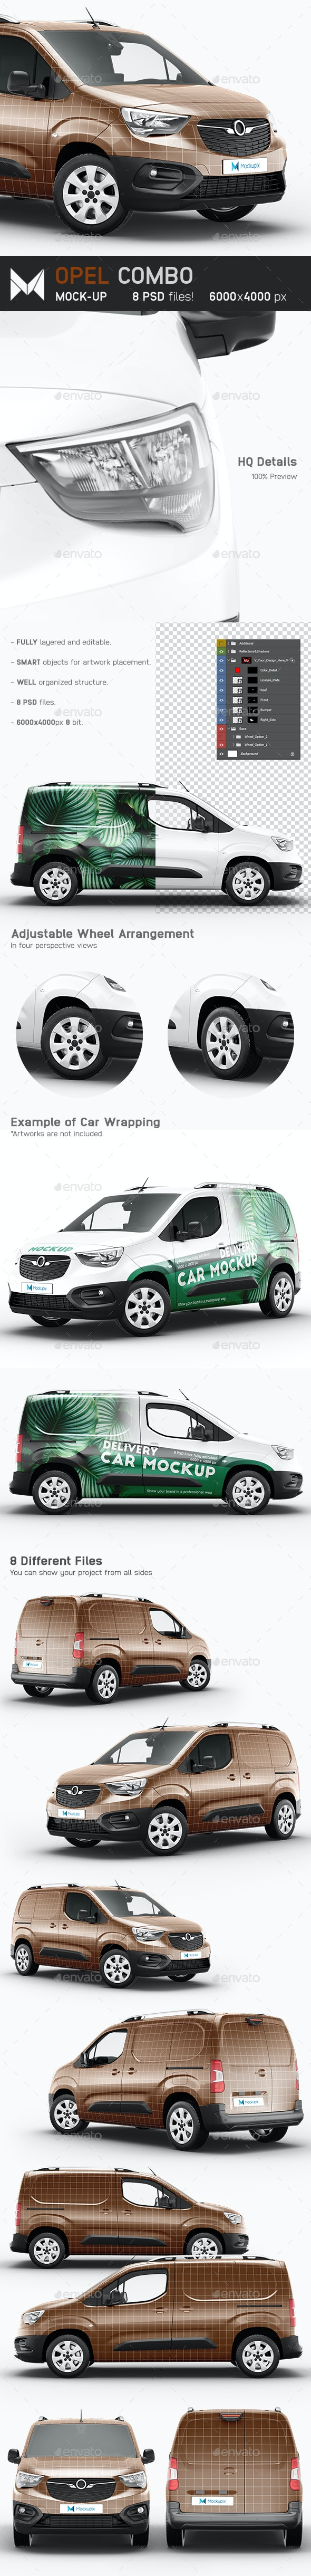 Opel Combo Delivery Car Mockup - Vehicle Wraps Print